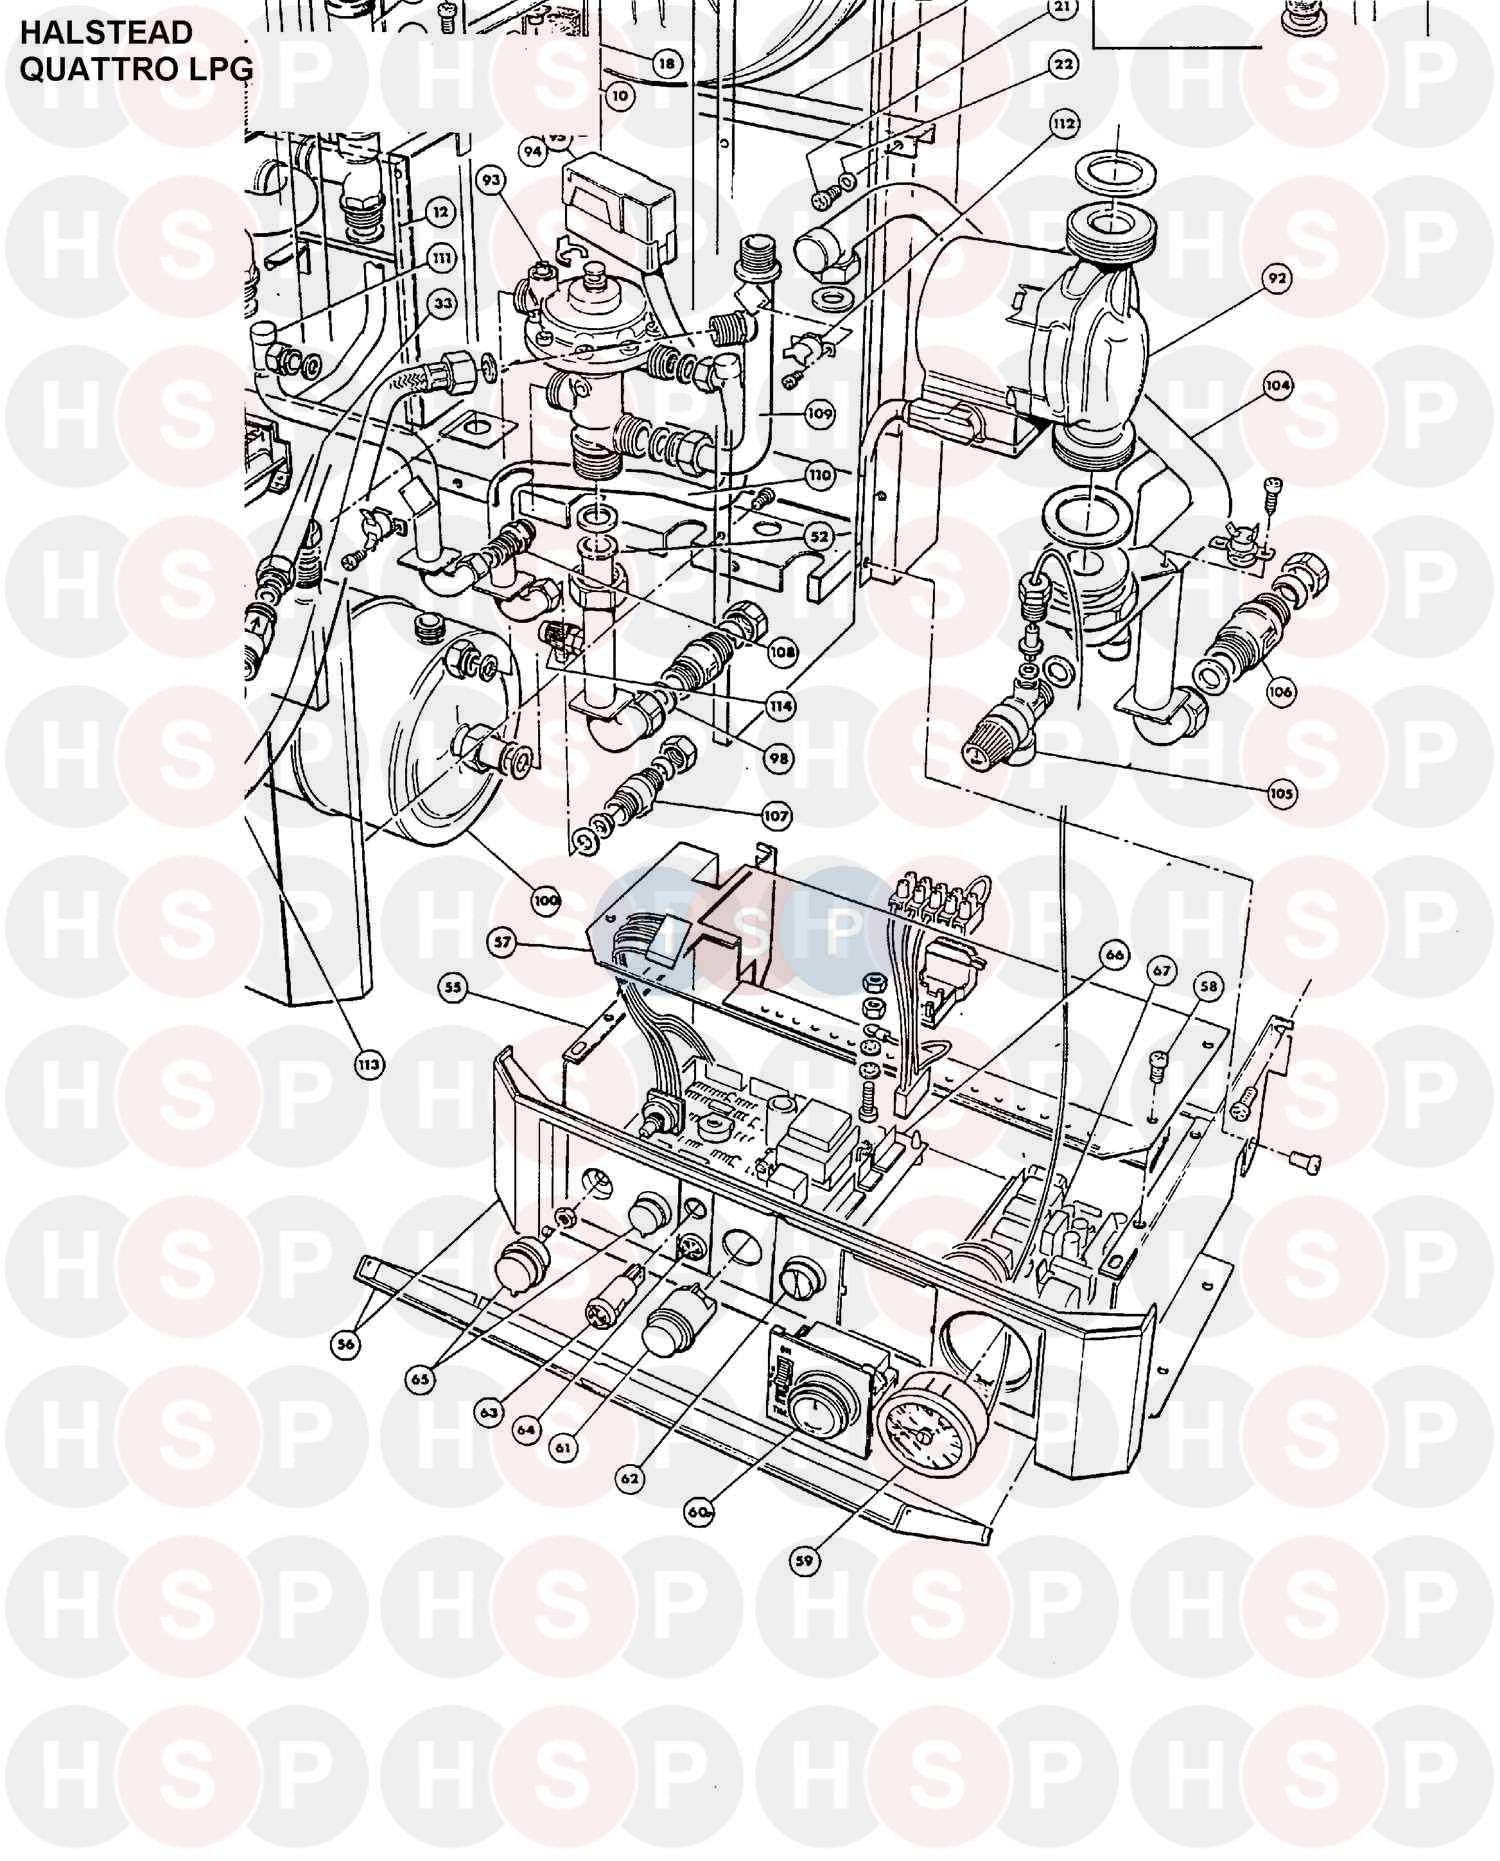 Halstead Quattro Lpg Boiler Assembly 5 Diagram Heating Spare Parts Wiring Pump Overrun For